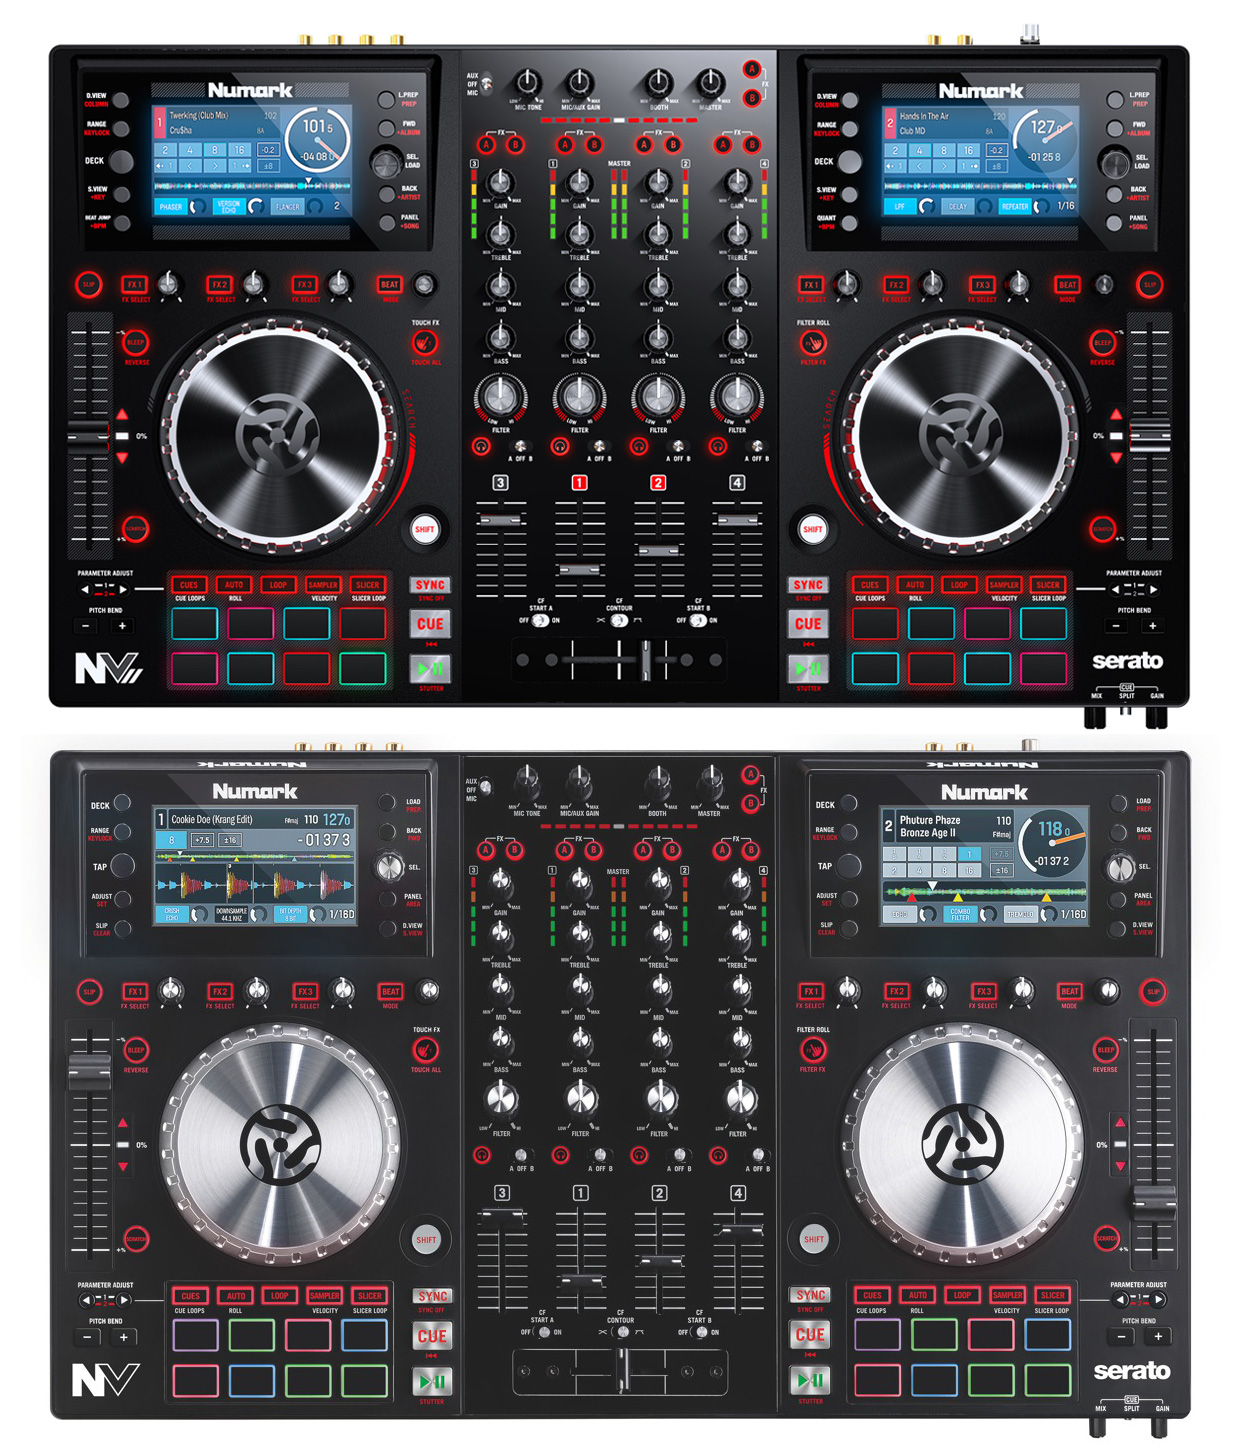 Numark_NV1_vs_NV2